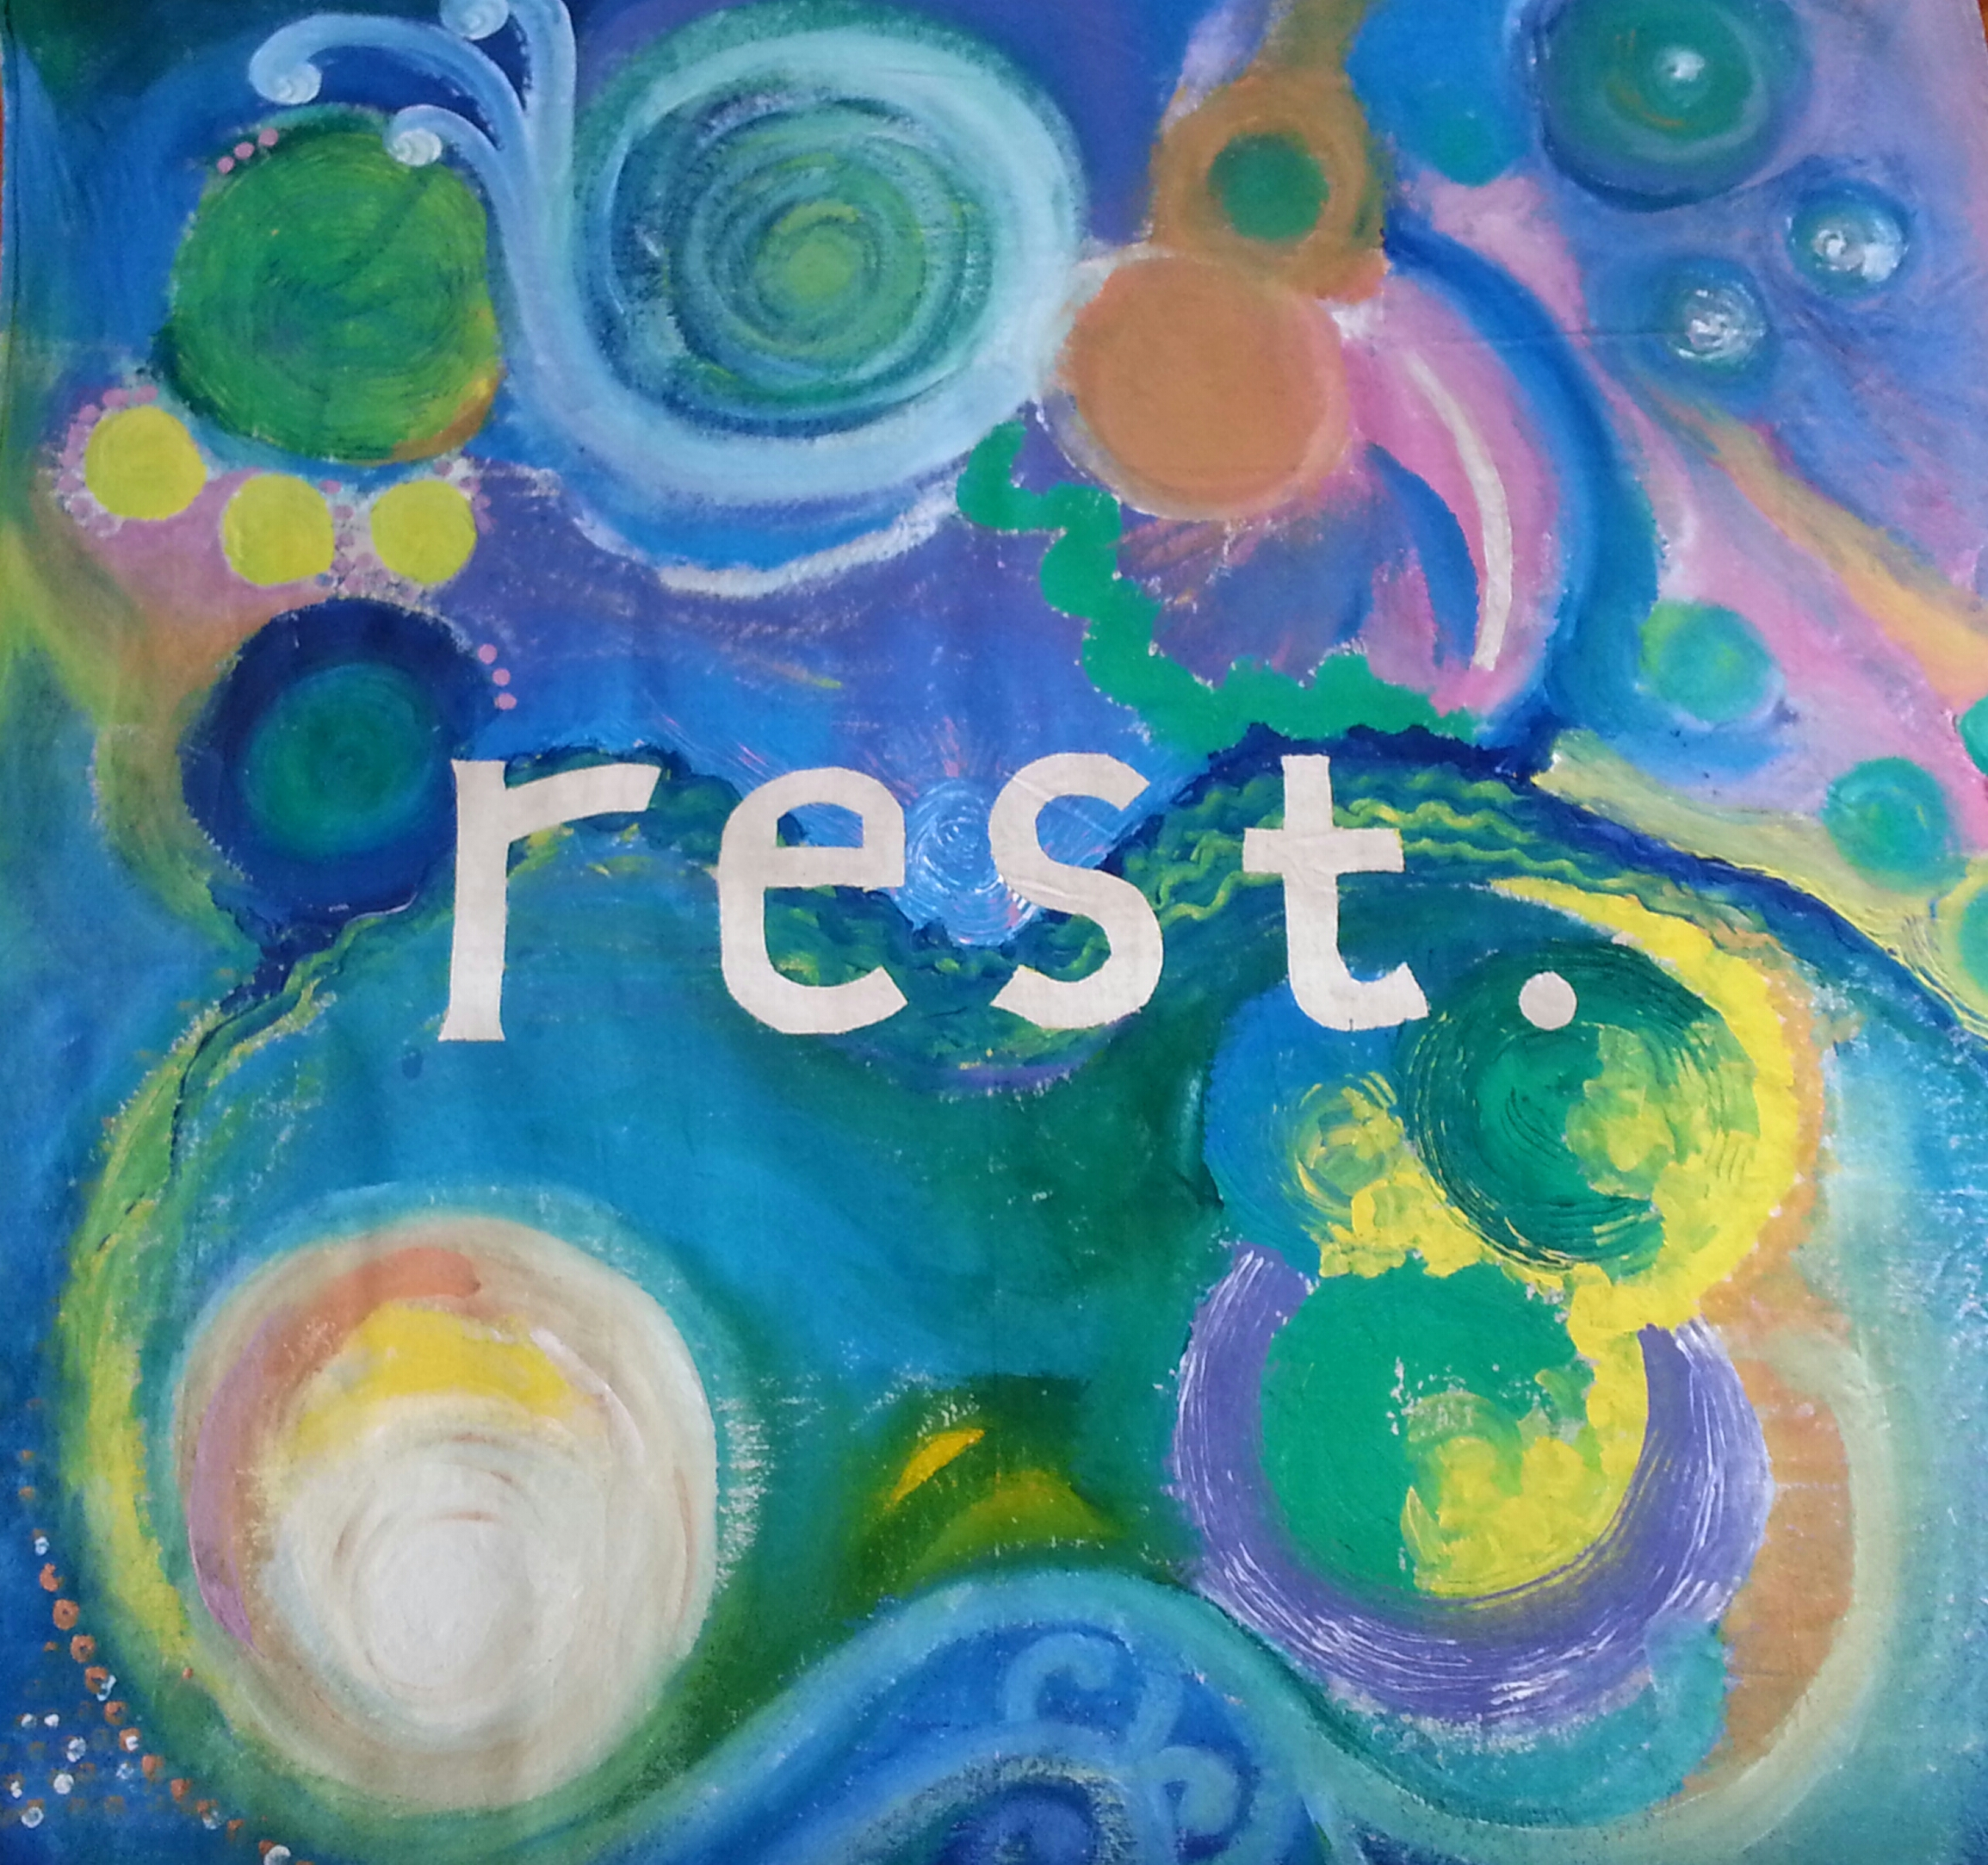 Rest , created by Imago Dei women in a project led by Maile Sand.